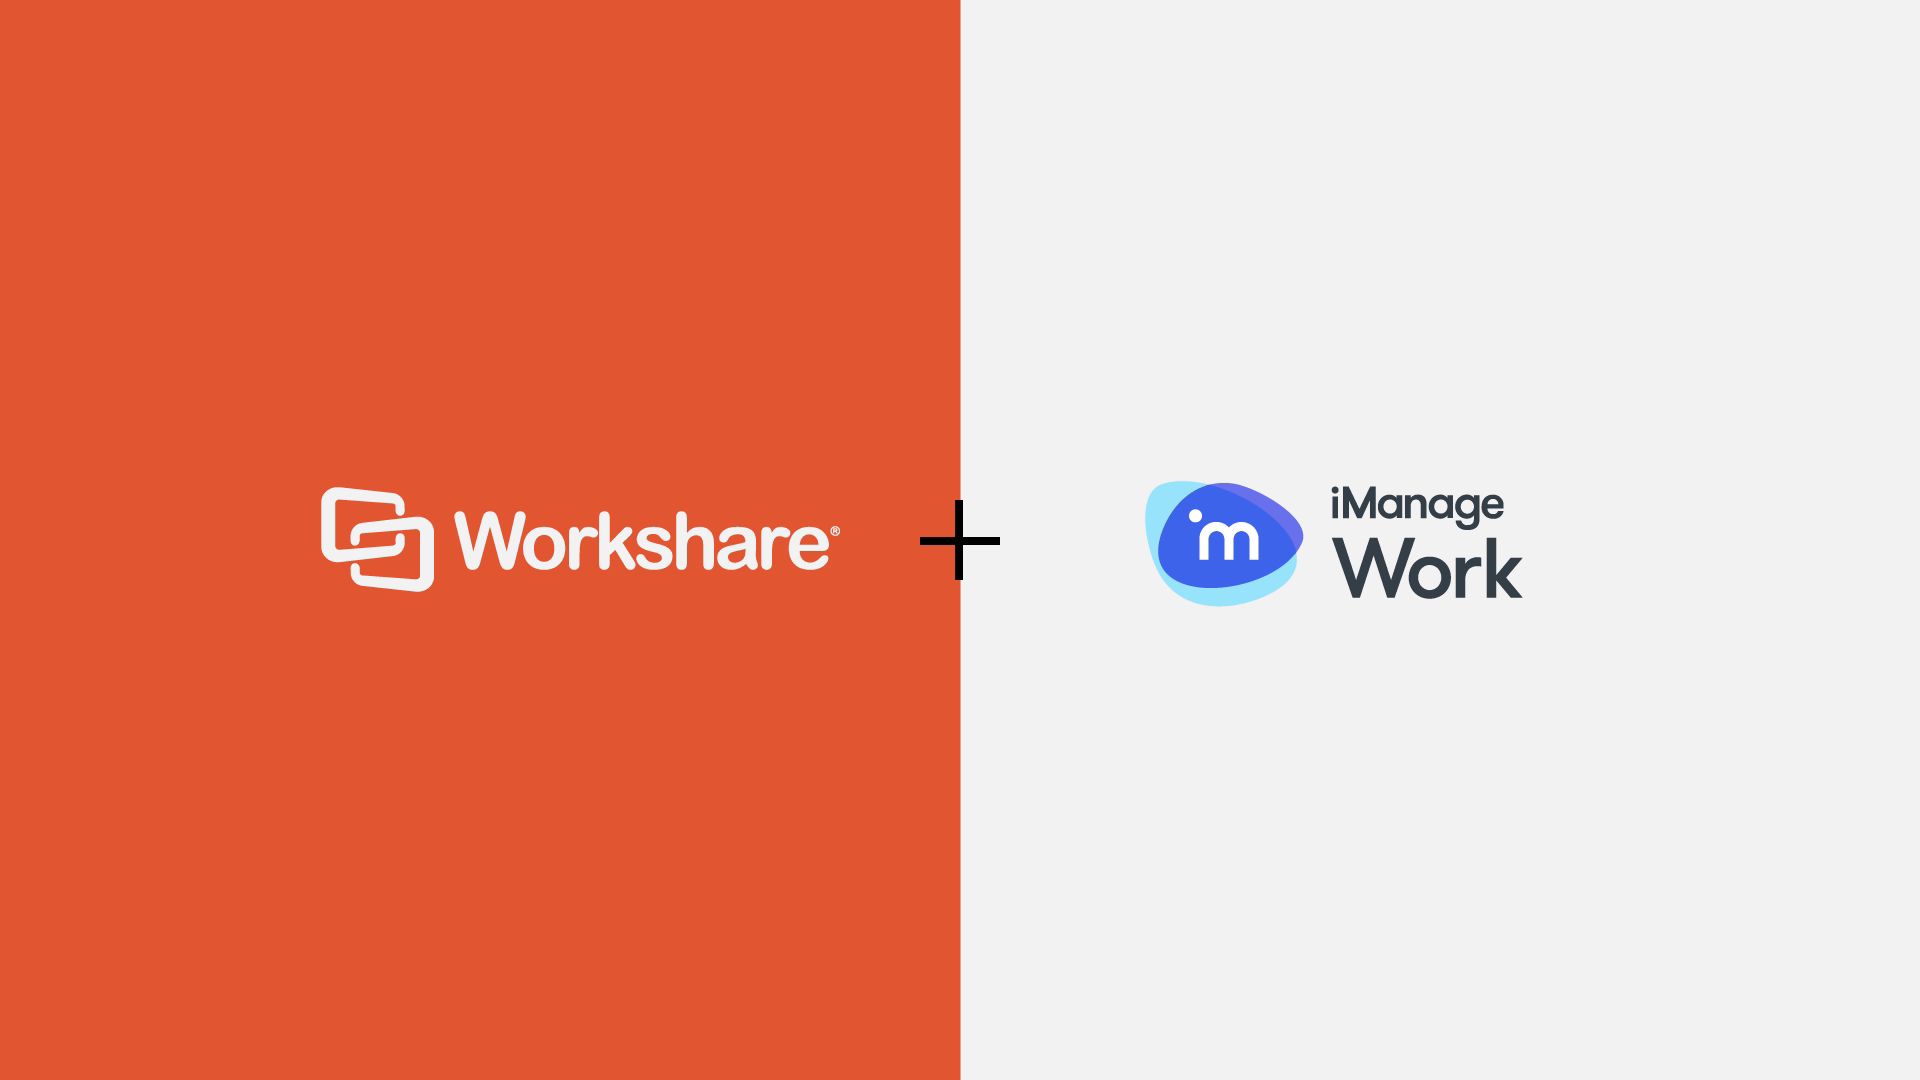 Workshare Compare, embedded in iManage Work 10